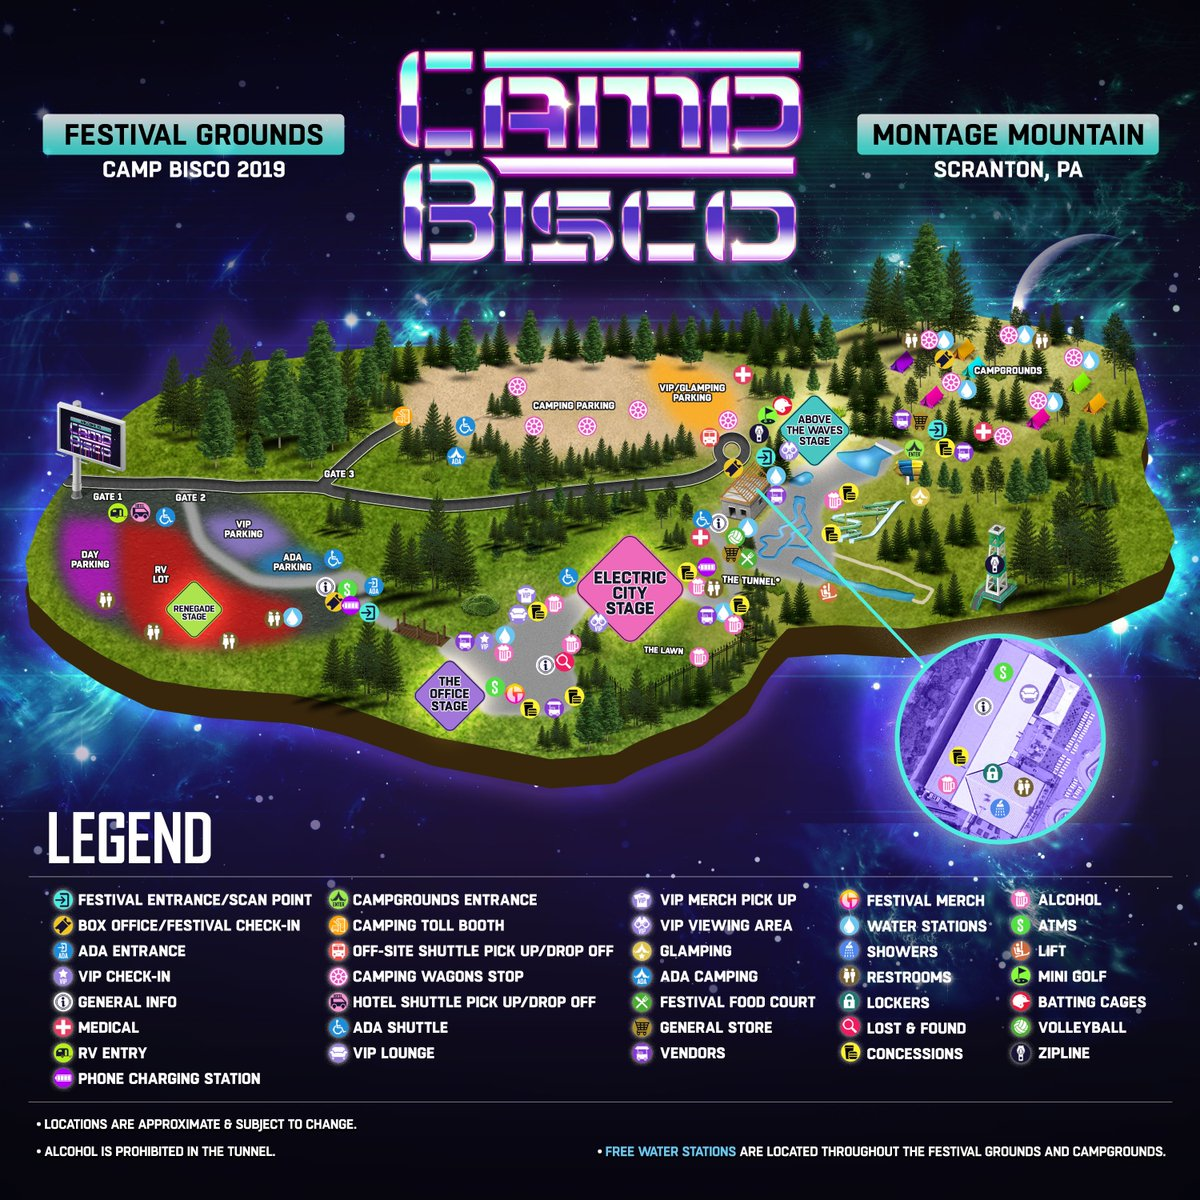 2021 Camp Bisco map